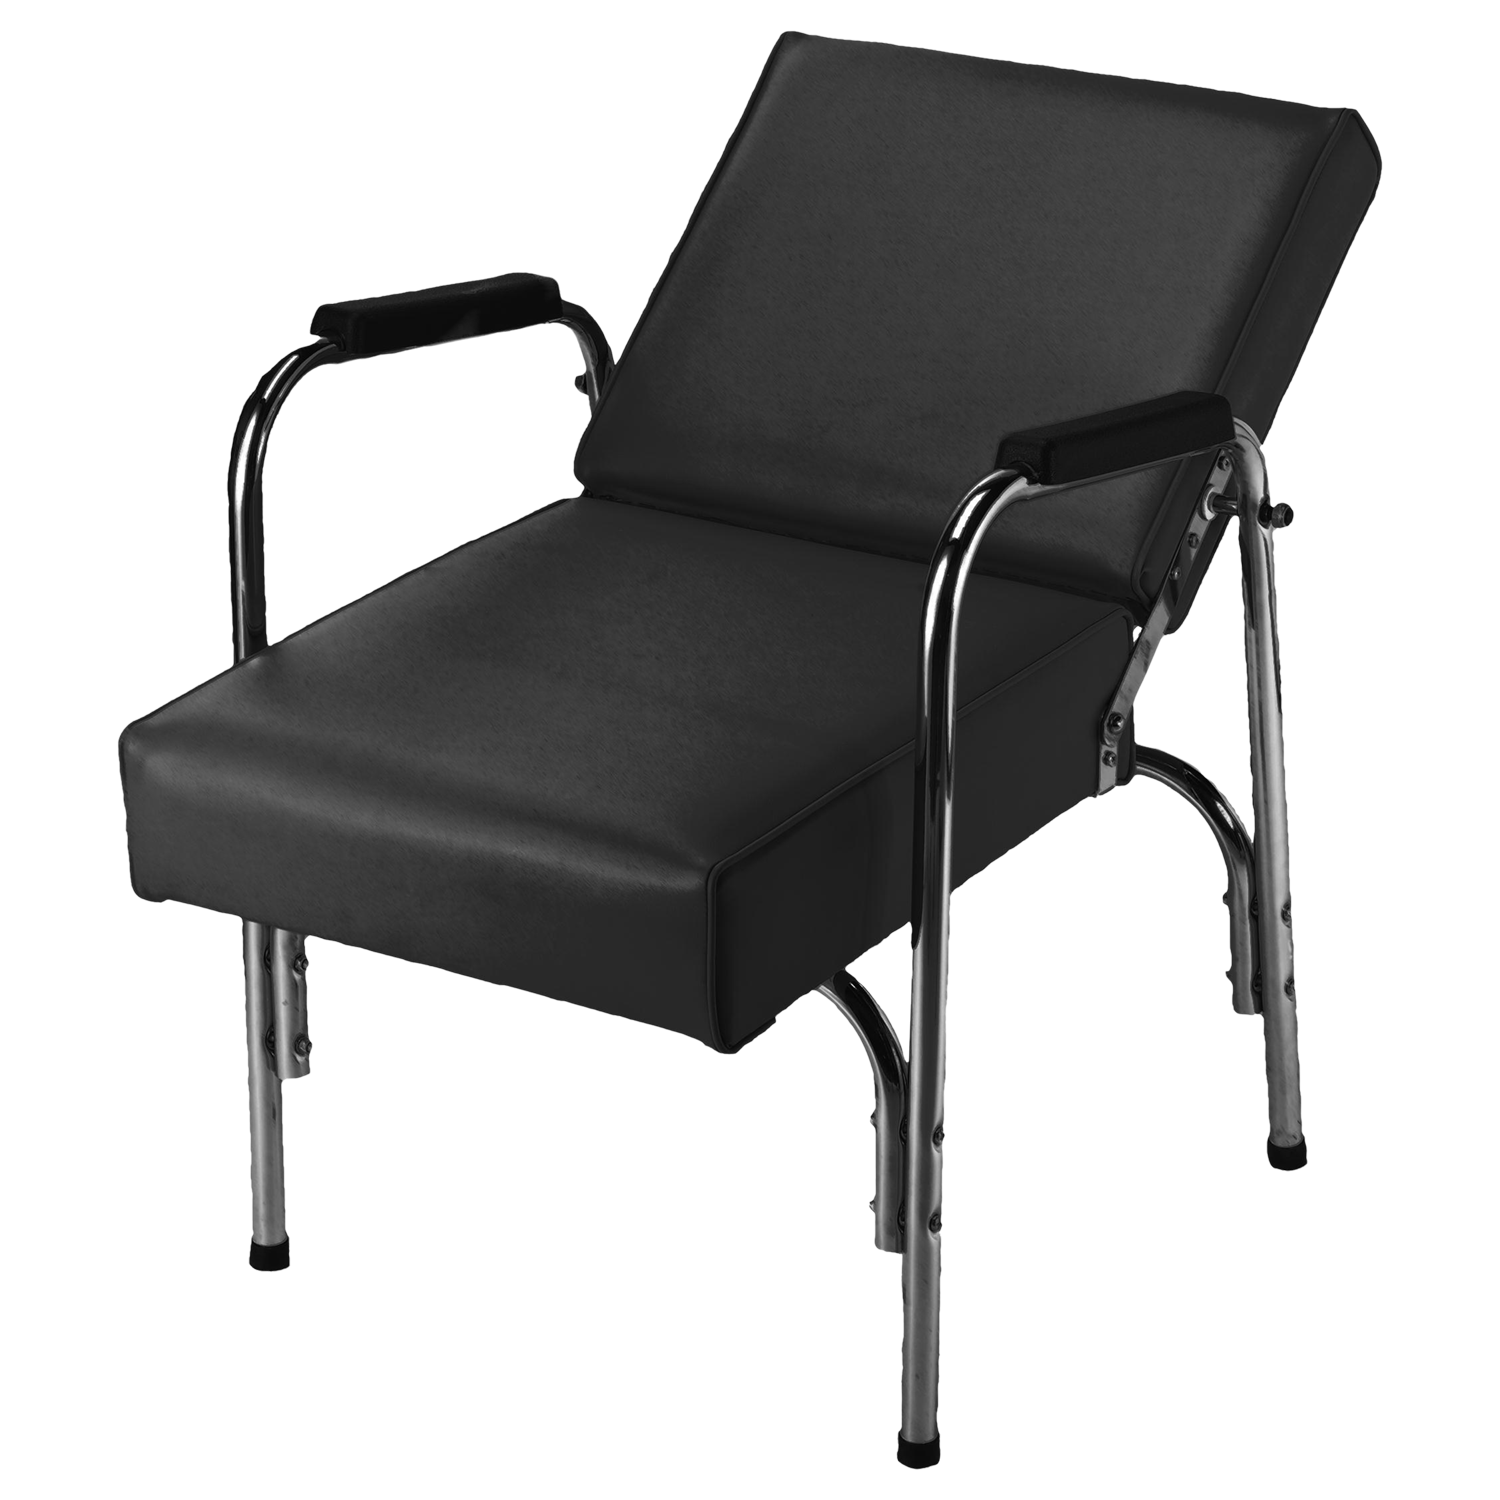 Pibbs Auto Recline Shampoo Chair at Sally Beauty